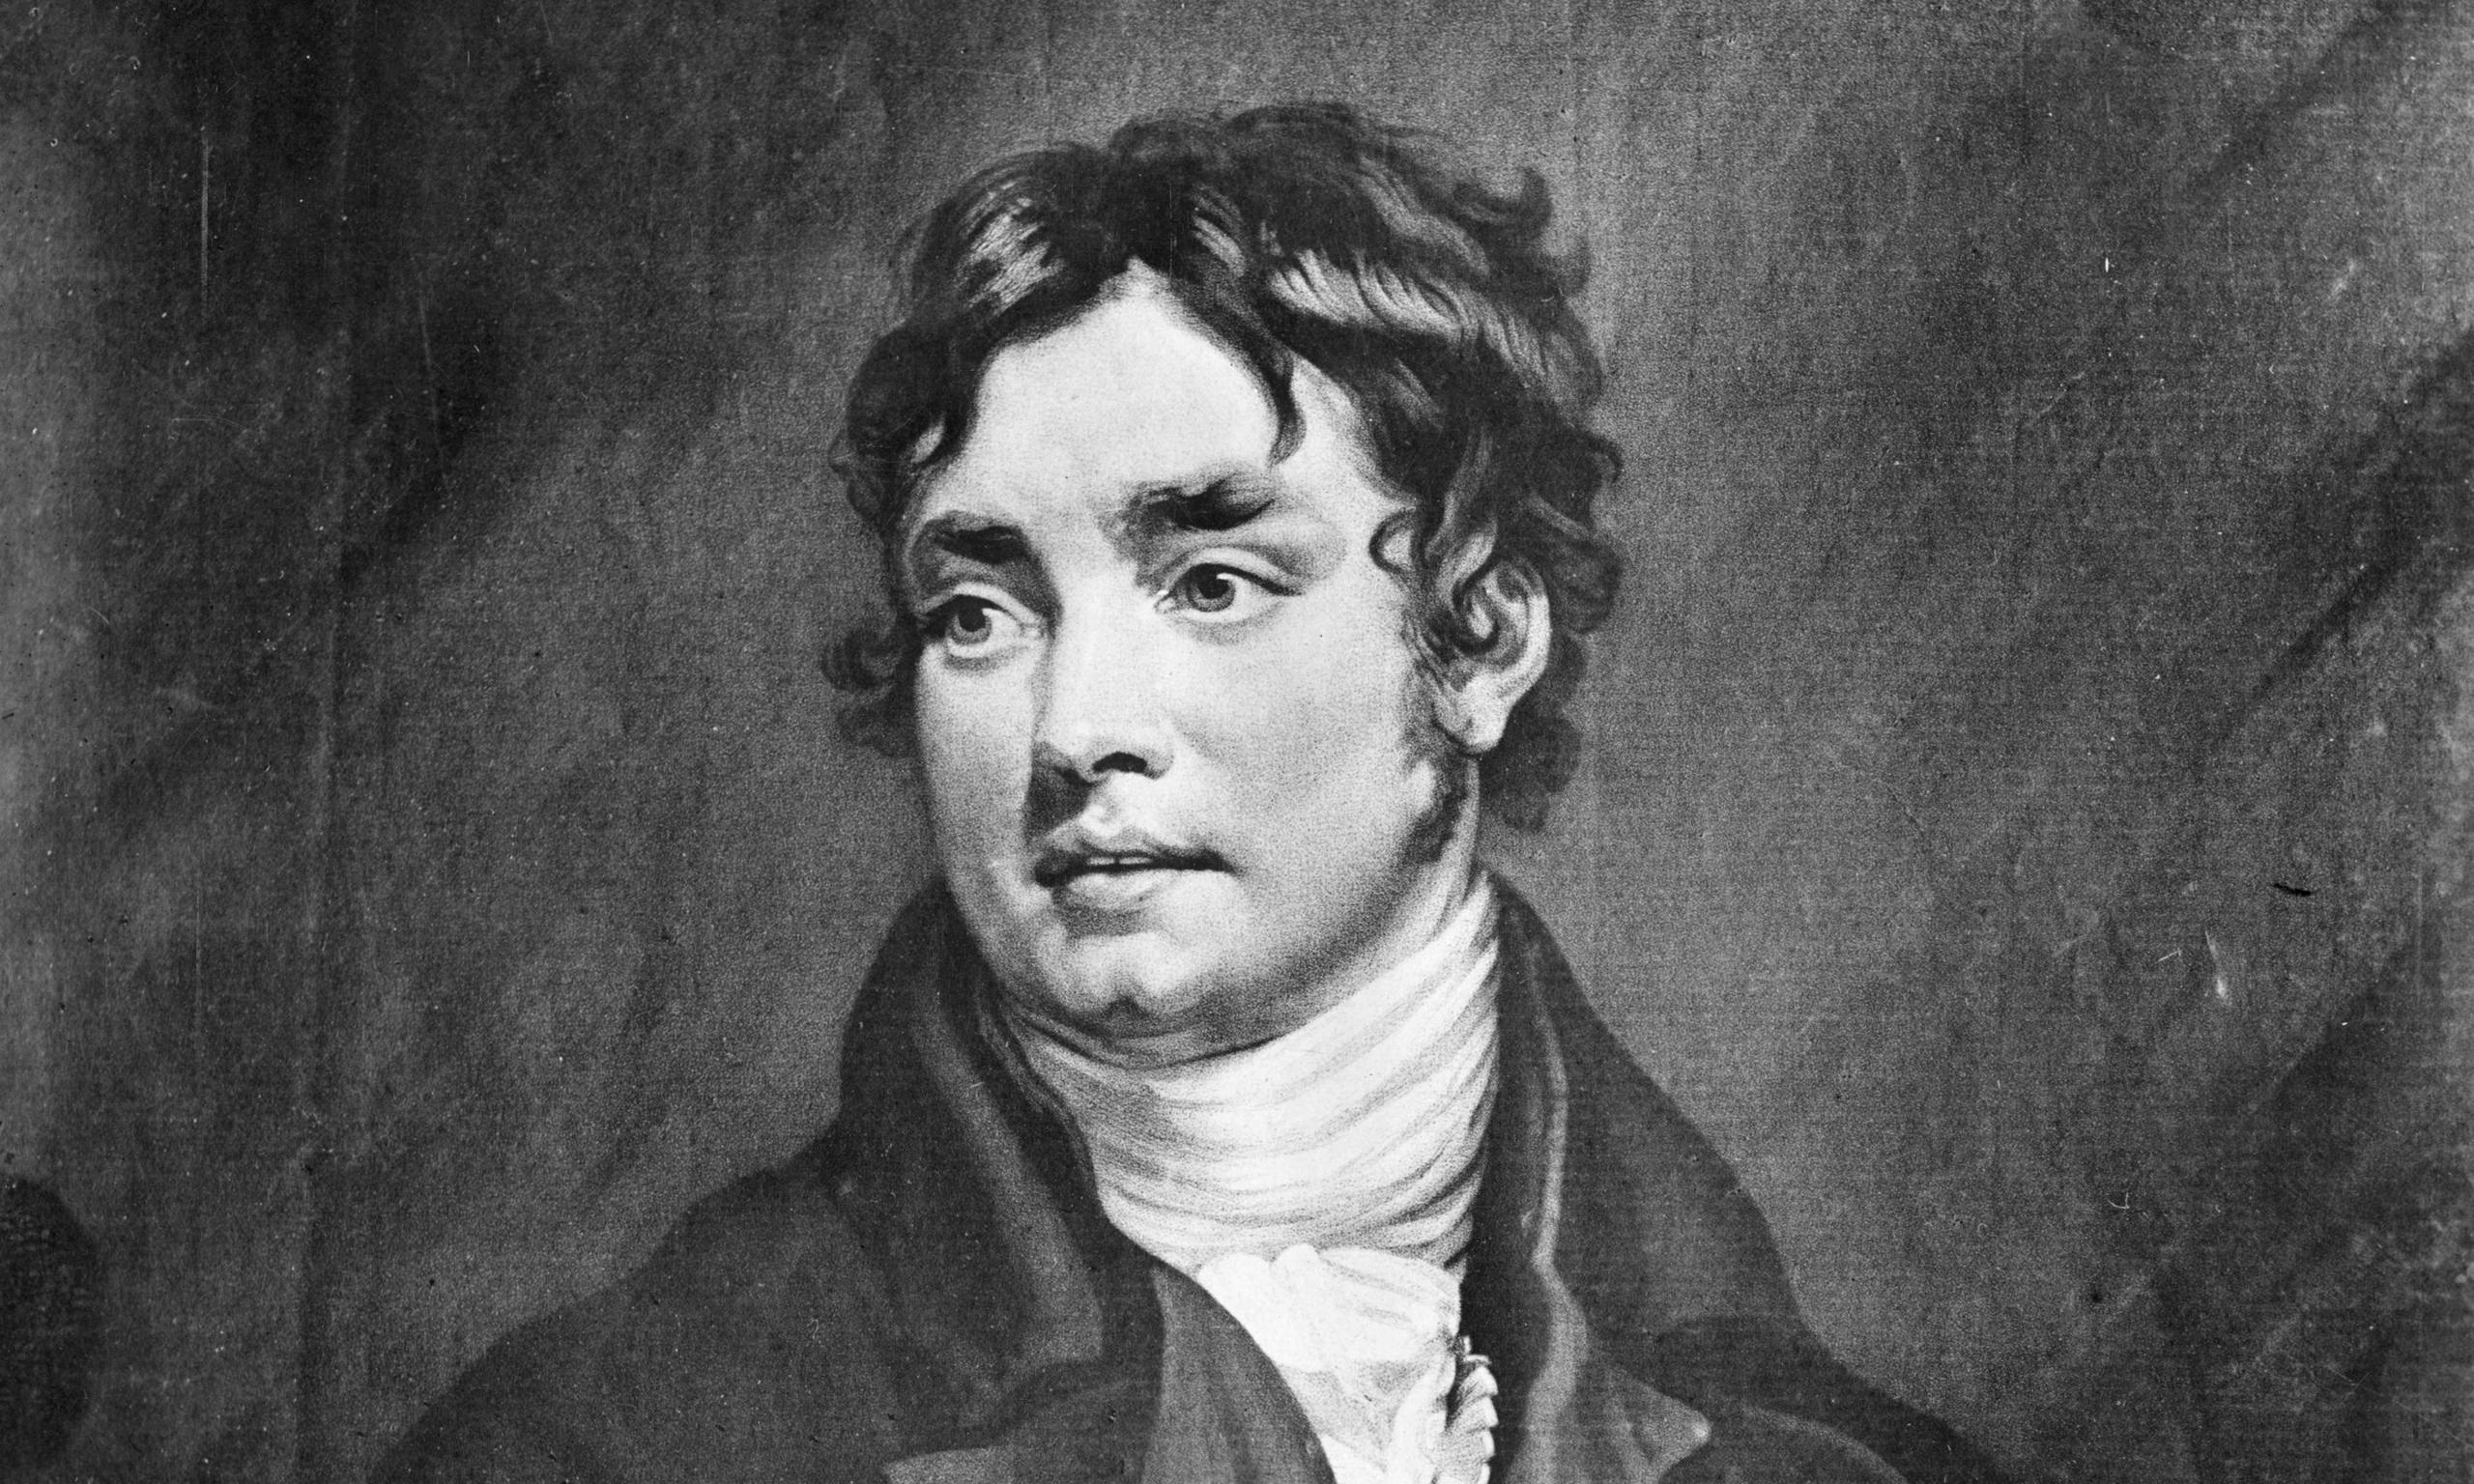 a biography of samuel taylor coleridge Poet born in ottery st mary in devonshire england, coleridge was the youngest  of 10 children born to john coleridge, a minister, and his wife, ann bowden.